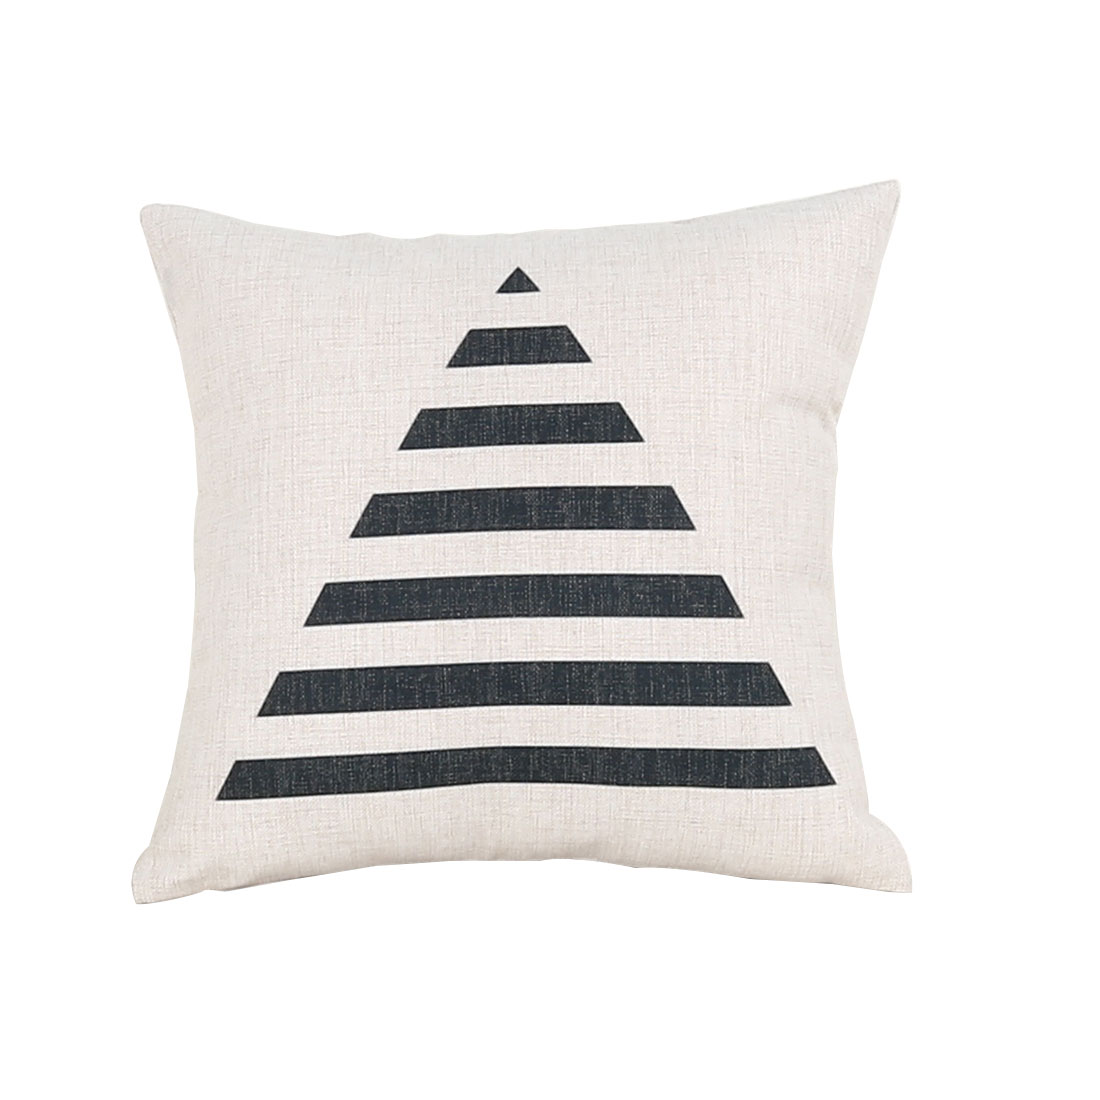 Sofa Cotton Linen Triangle Pattern Square Design Waist Throw Cushion Pillow Cover